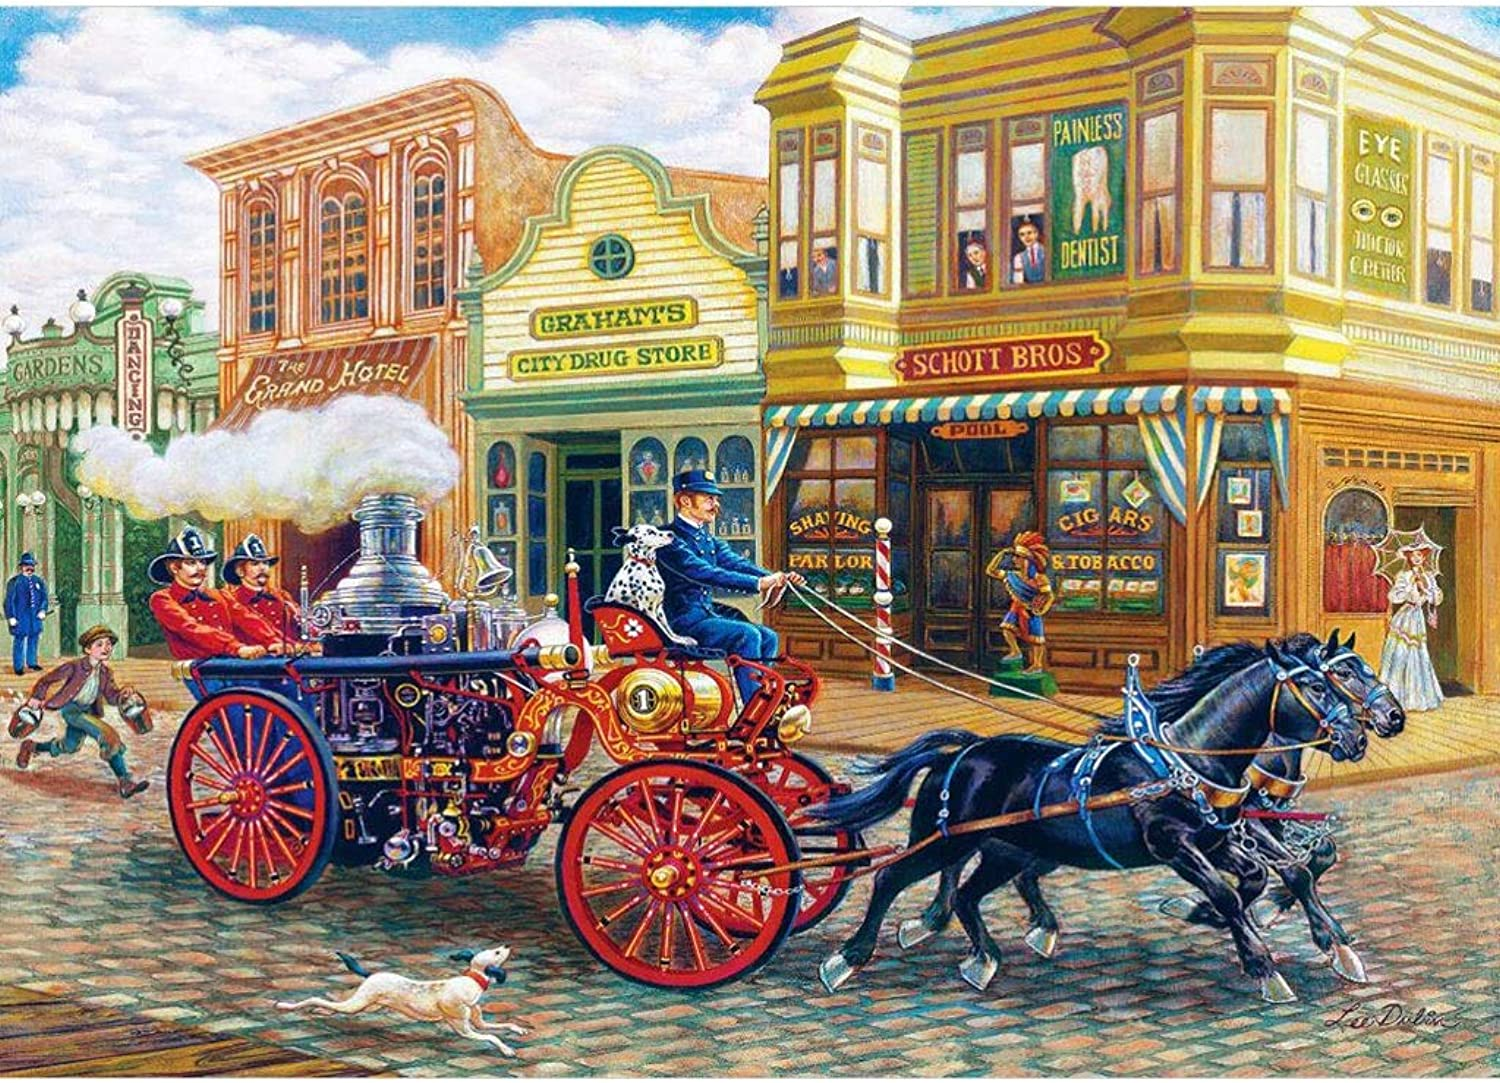 Puzzle House Wooden Jigsaw Puzzle, Memory Of Uptown, 500 1000 Pieces Puzzles Game For Adults & Kids,Decorative Painting 504 (Size   1000pc)